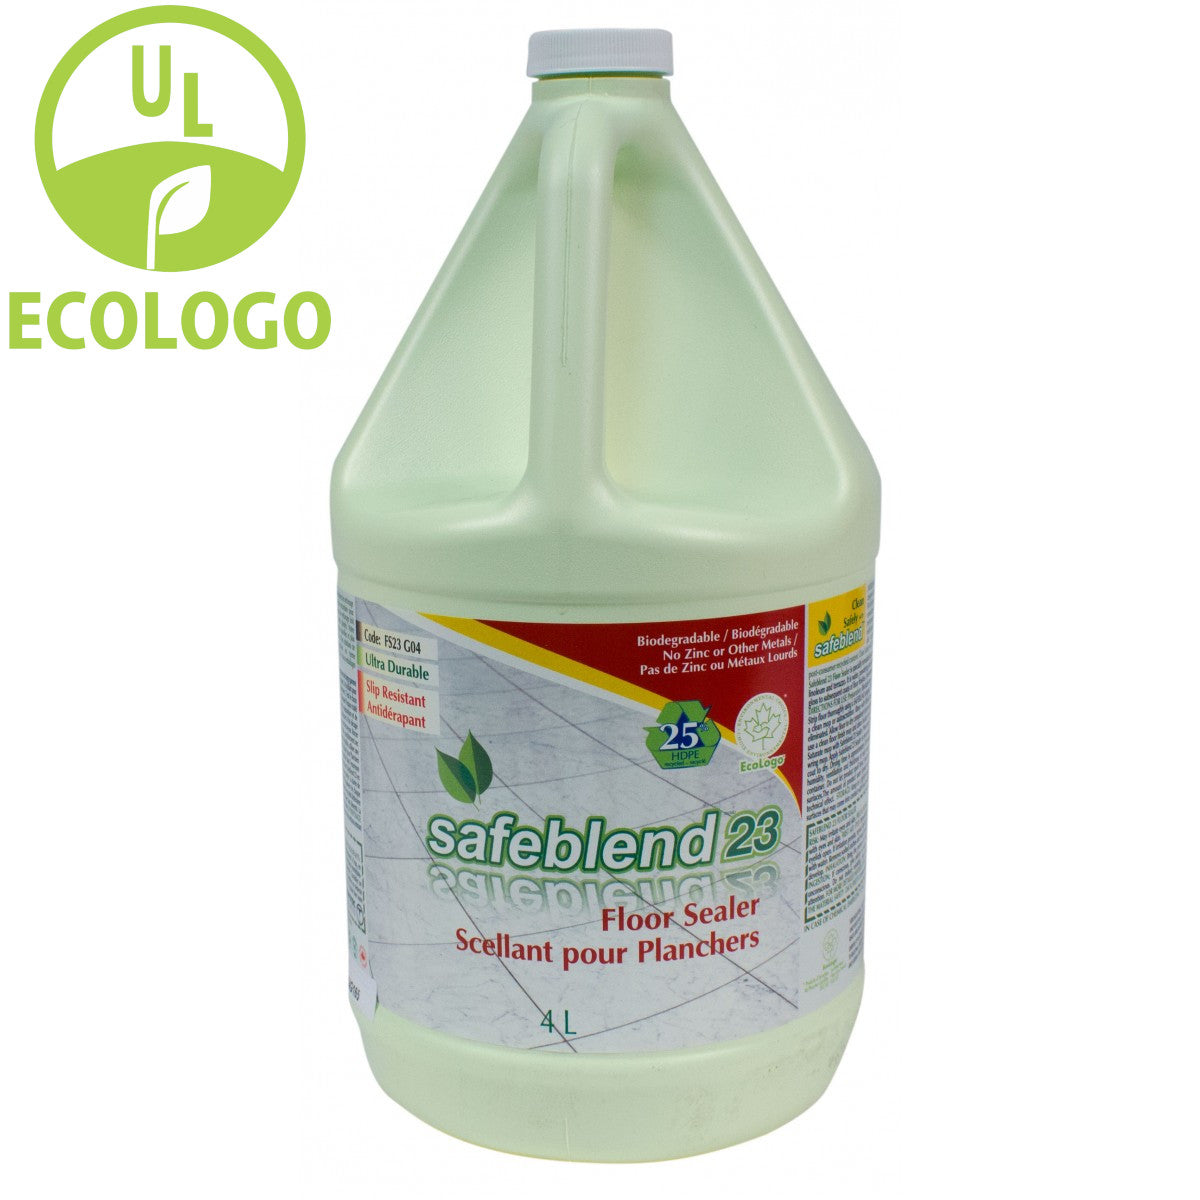 Safeblend 23 EcoLogo Floor Sealer - 4L - Super Vacs